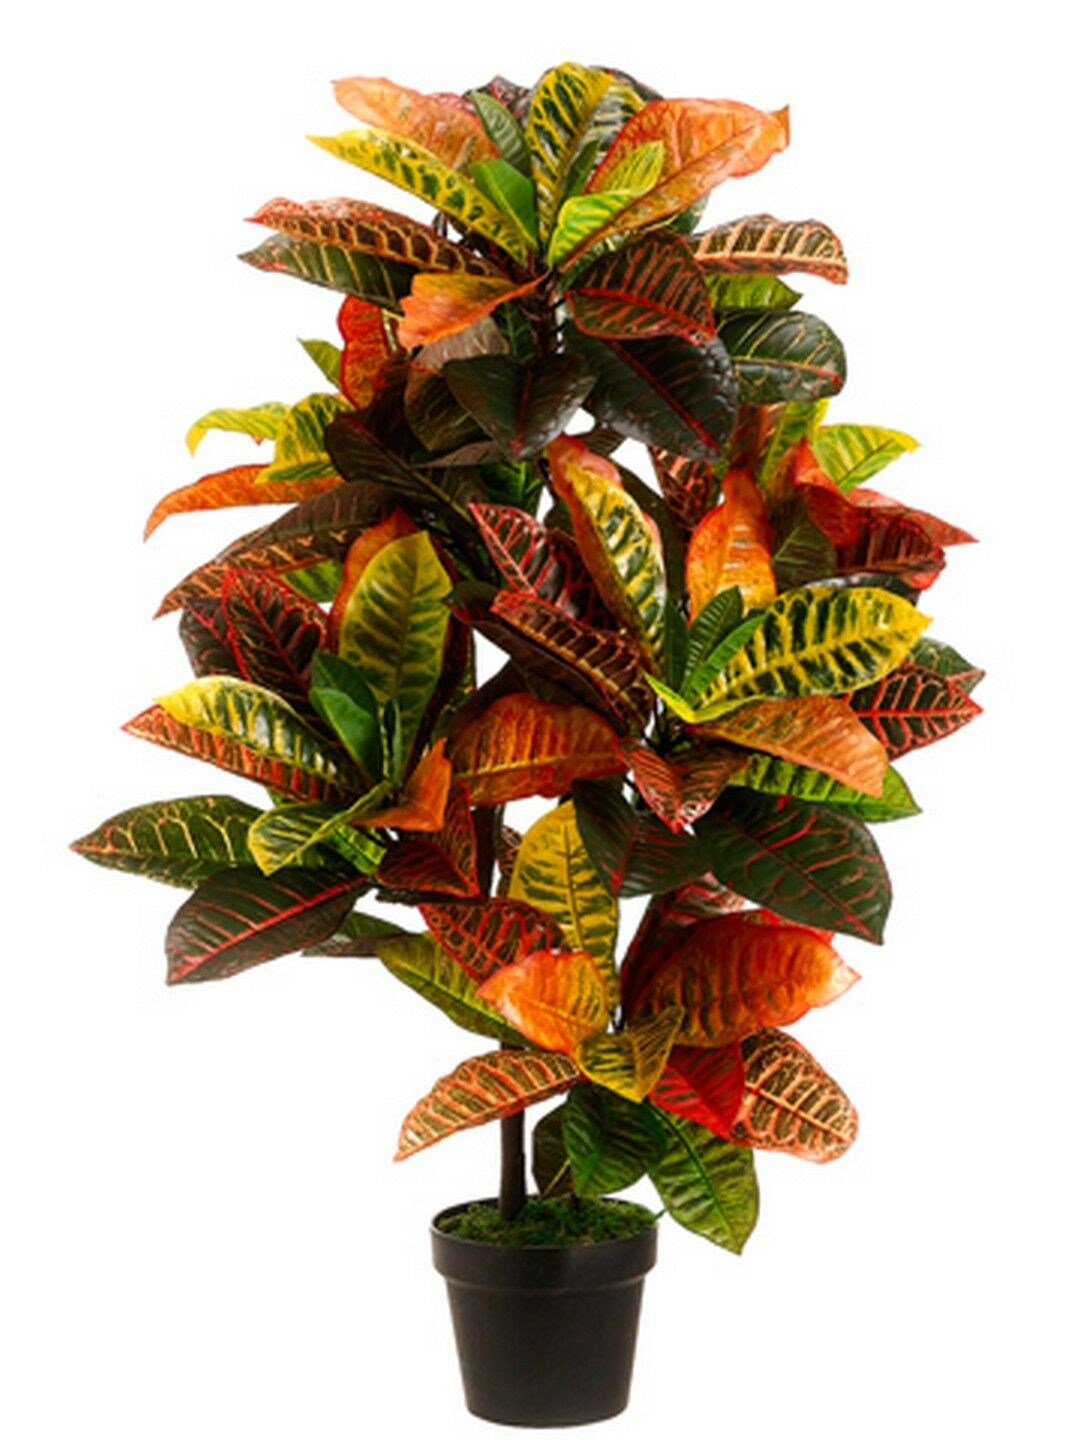 ARTIFICIAL 3' CROTON OUTDOOR UV TOPIARY TREE BUSH PALM IN POT POOL 5 7 6 4 PATIO